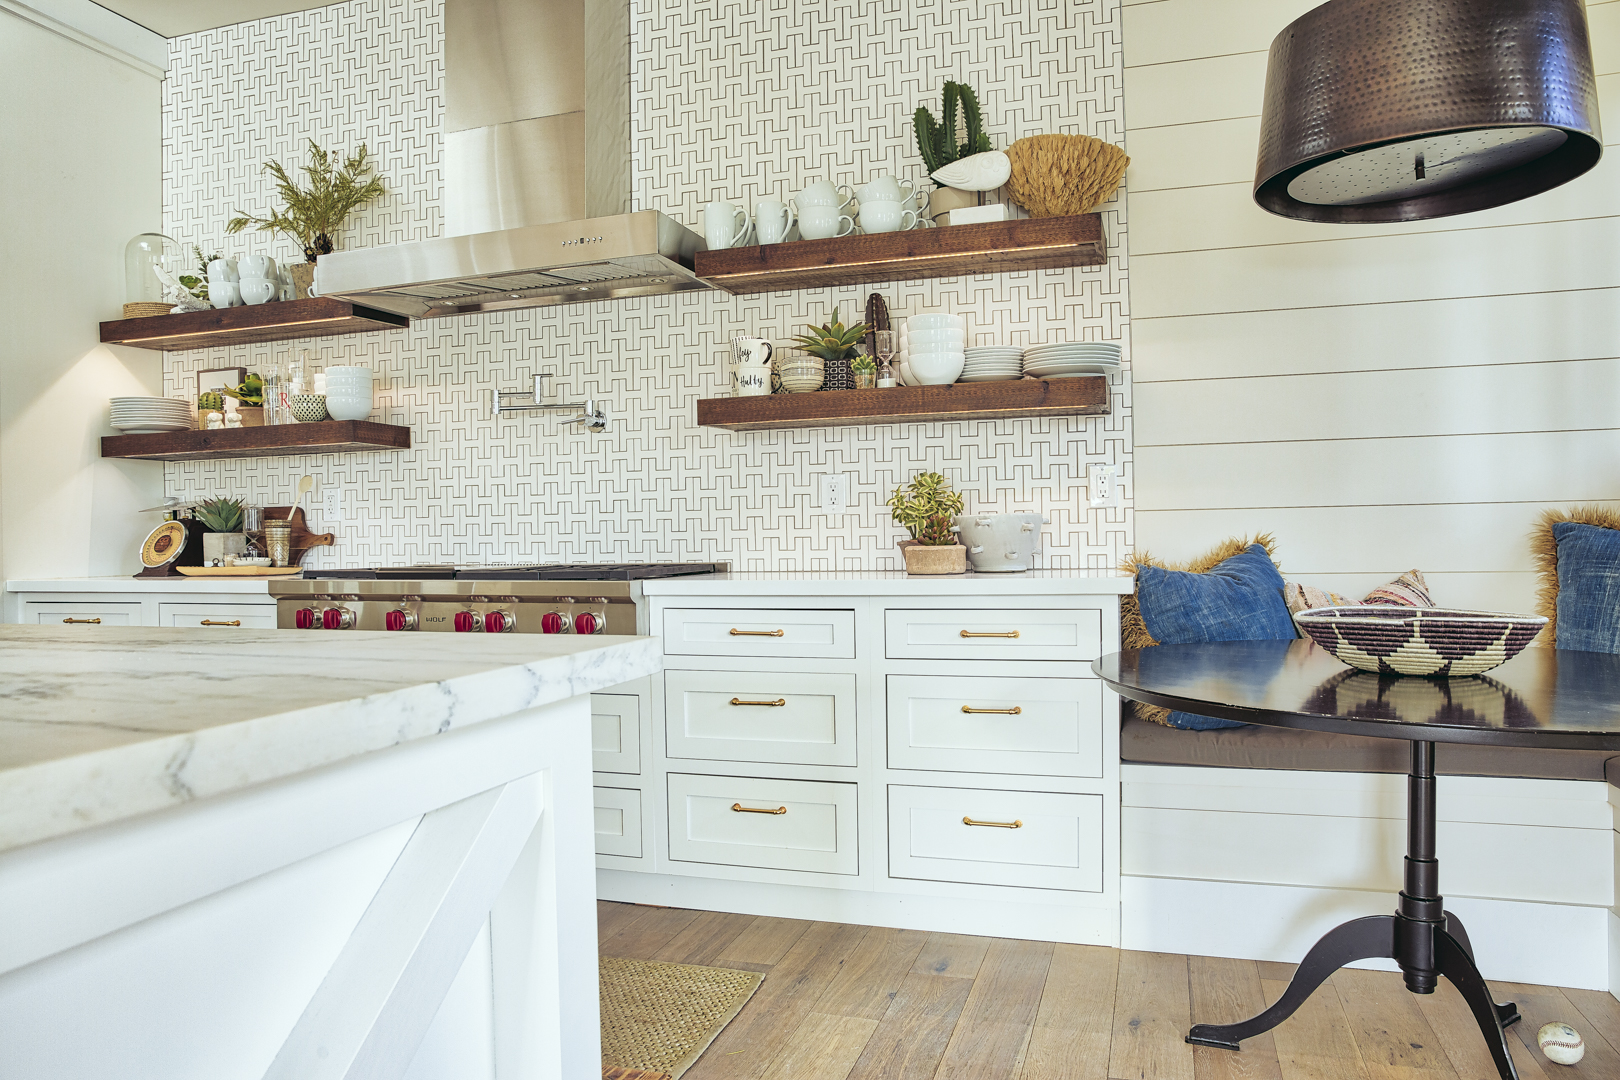 Bungalow Furniture & Accessories - Scottsdale, AZ - Kitchen